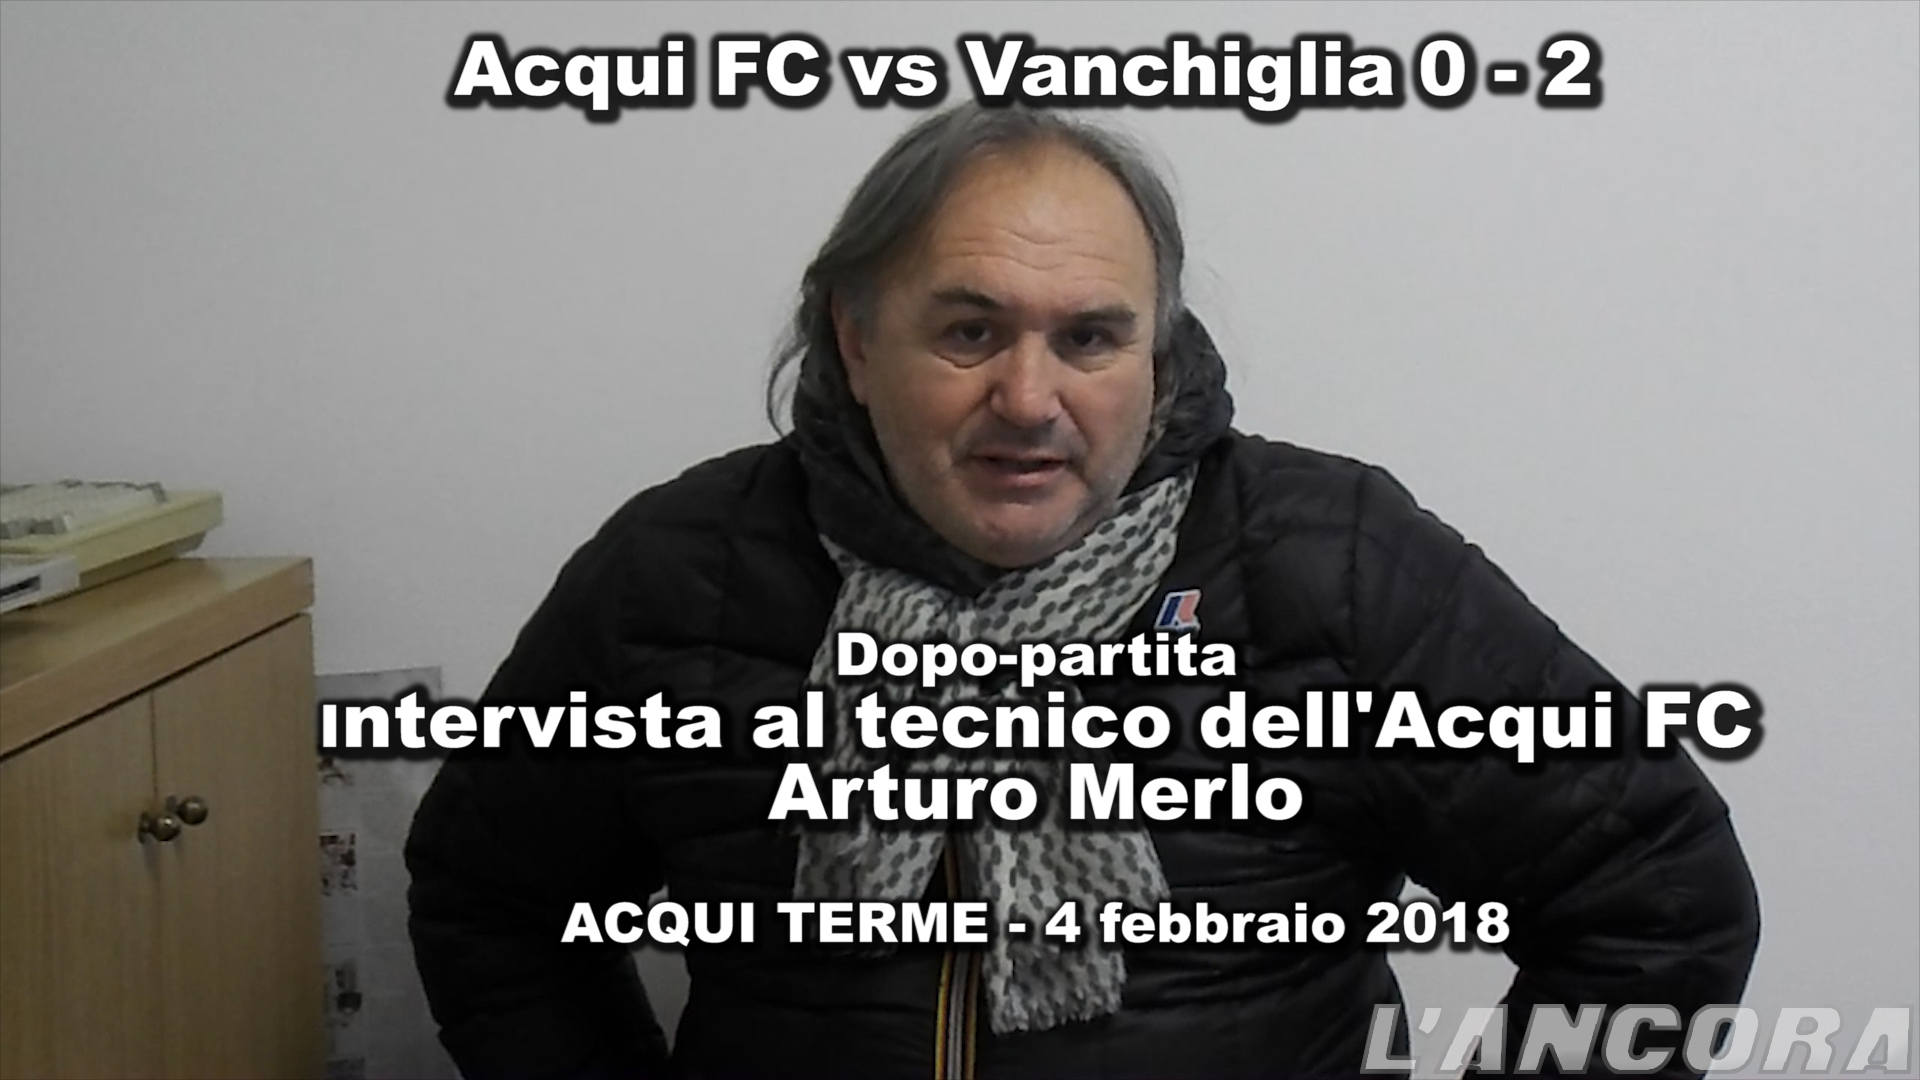 Arturo Merlo, Video intervista